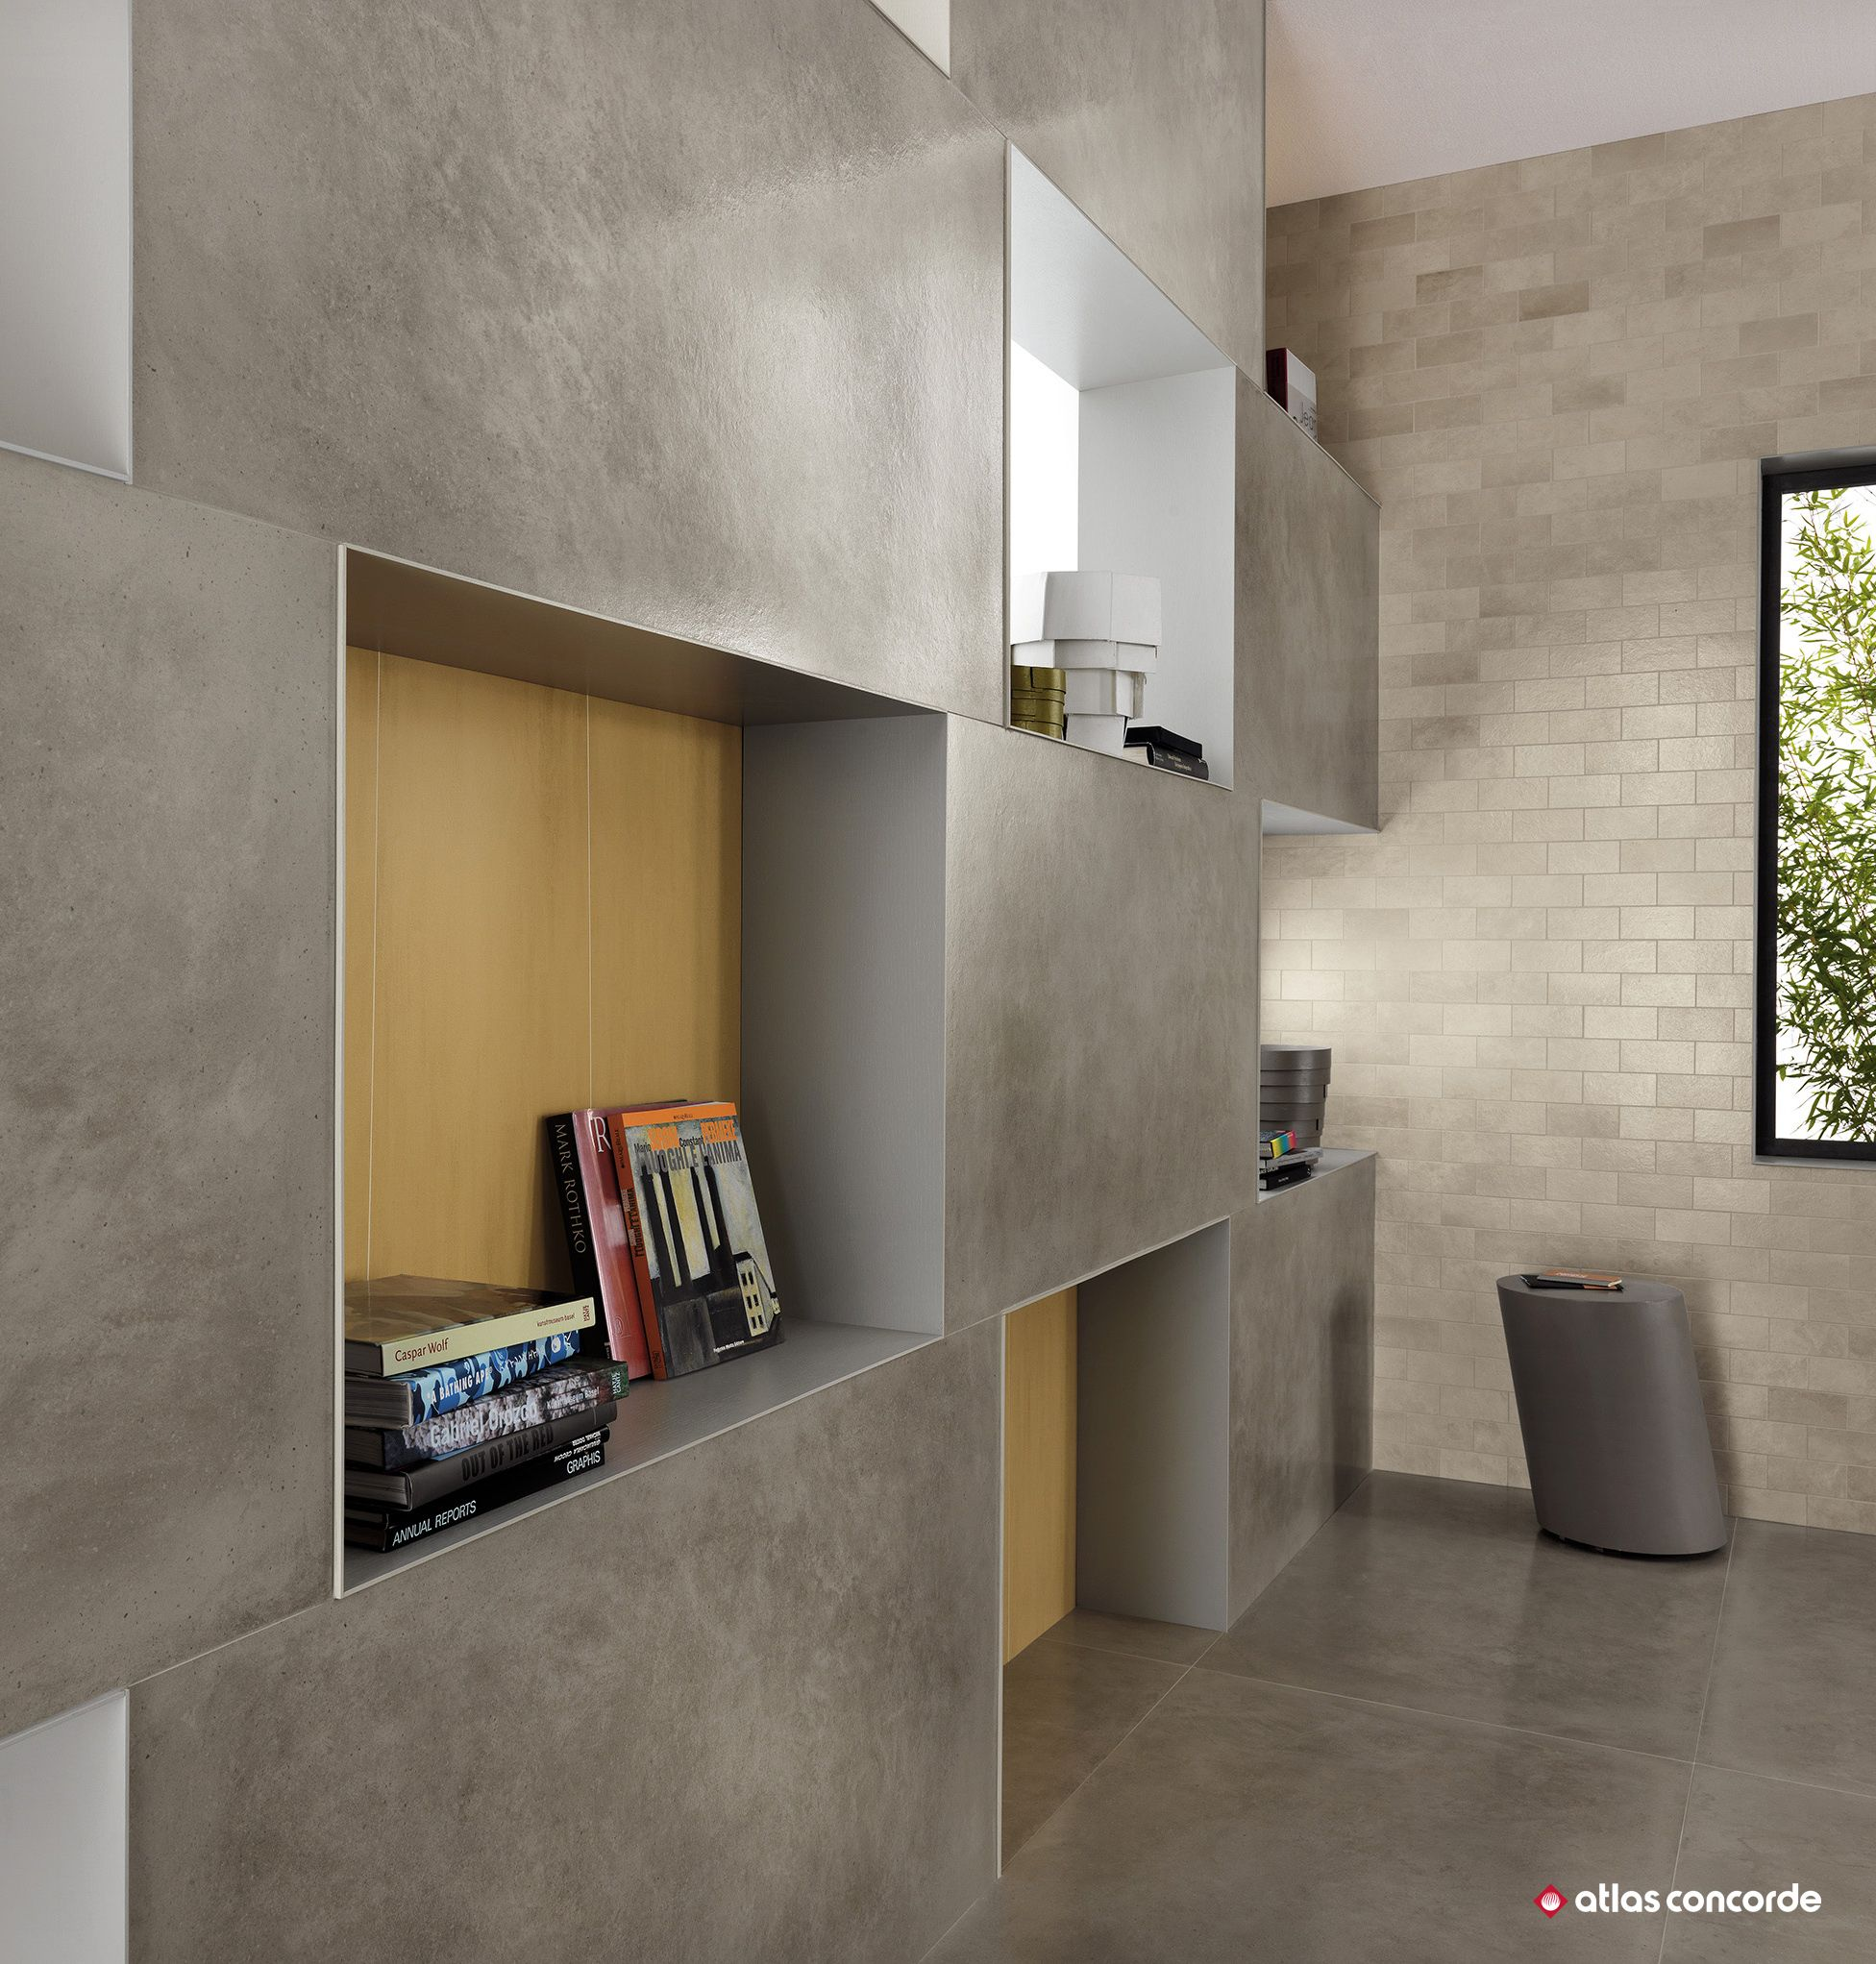 Resin And Concrete Look Porcelain Floor Tiles For Design Projects Contemporary Interior Design Flooring Porcelain Flooring